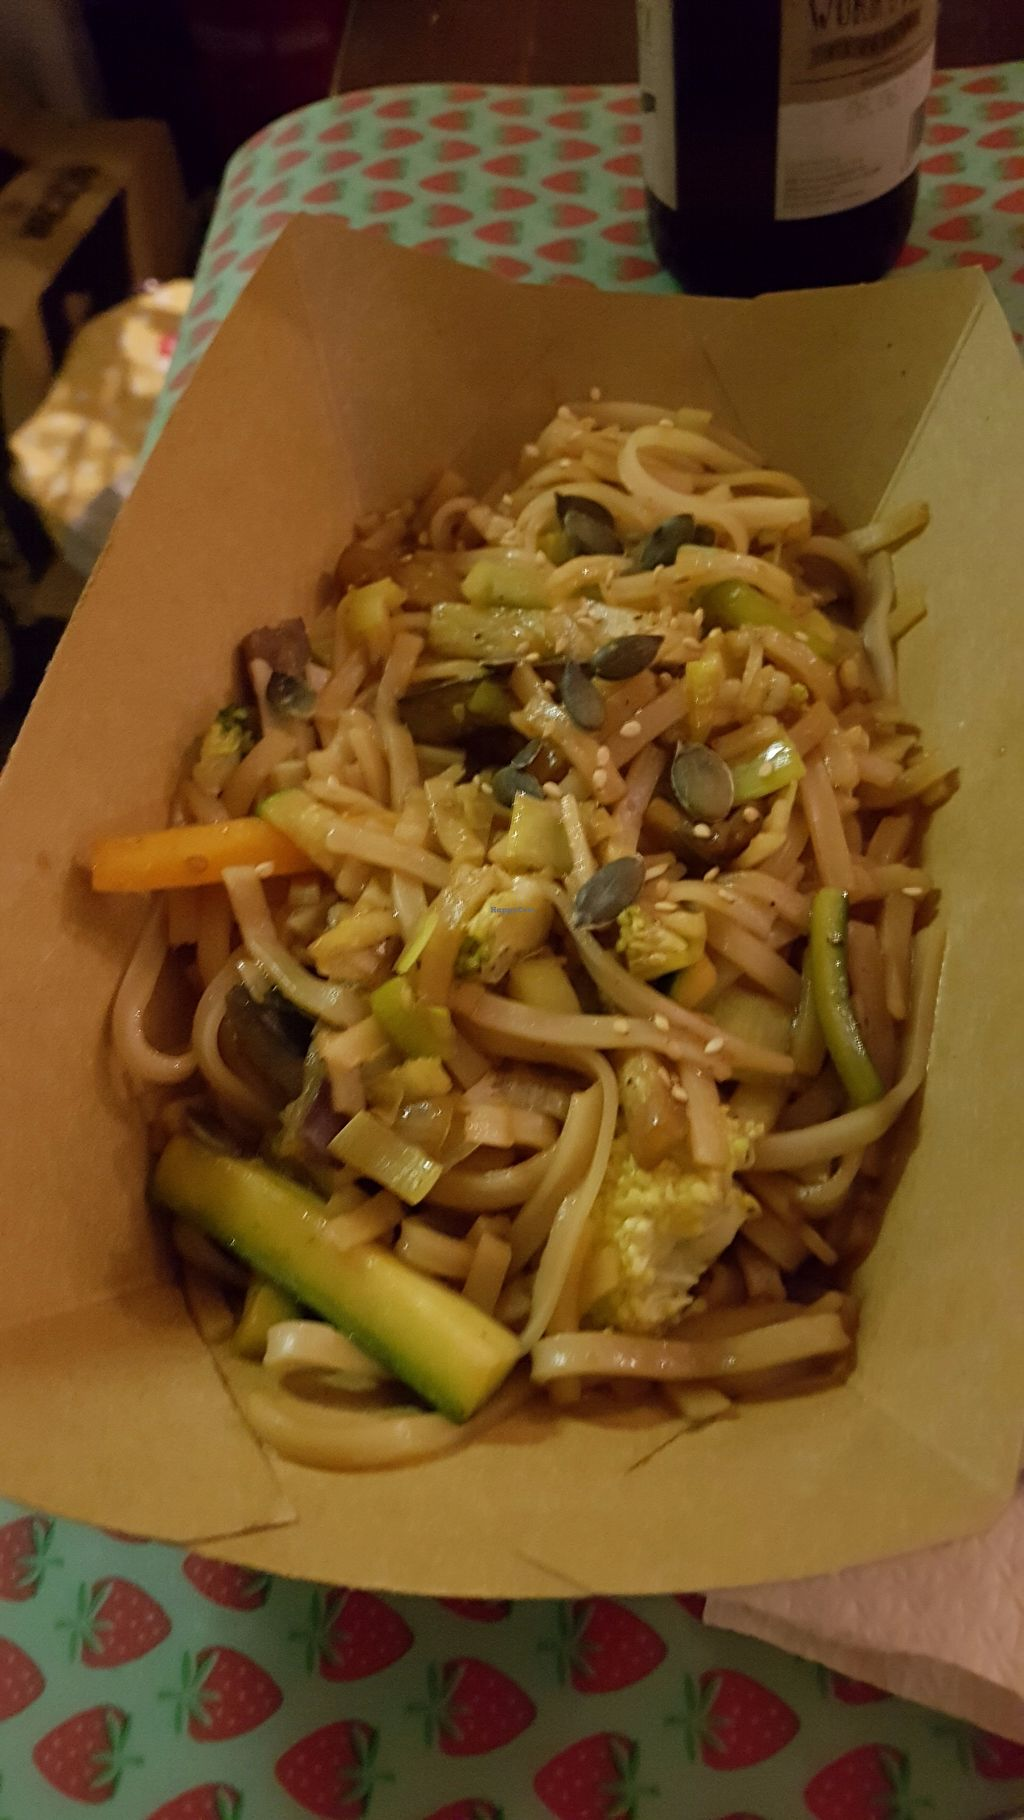 """Photo of Enjoy Vegan  by <a href=""""/members/profile/JonJon"""">JonJon</a> <br/>Wok of noodles <br/> August 21, 2017  - <a href='/contact/abuse/image/53530/295272'>Report</a>"""